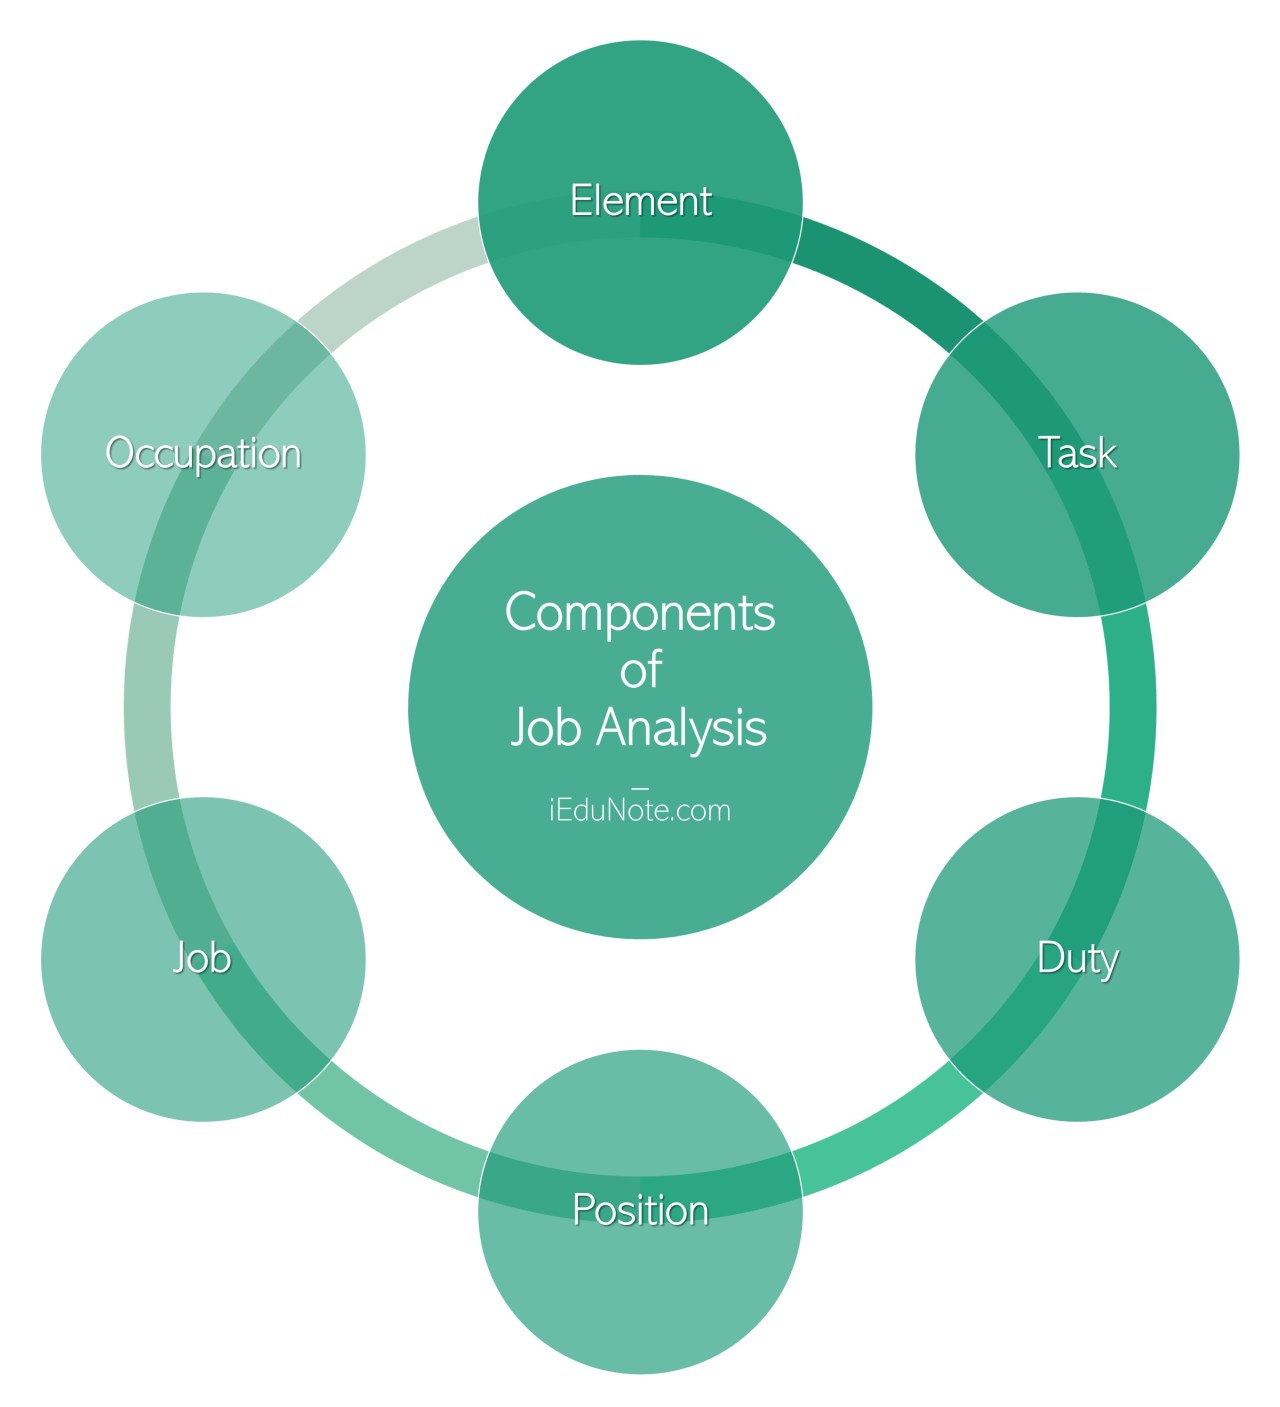 Components of Job Analysis